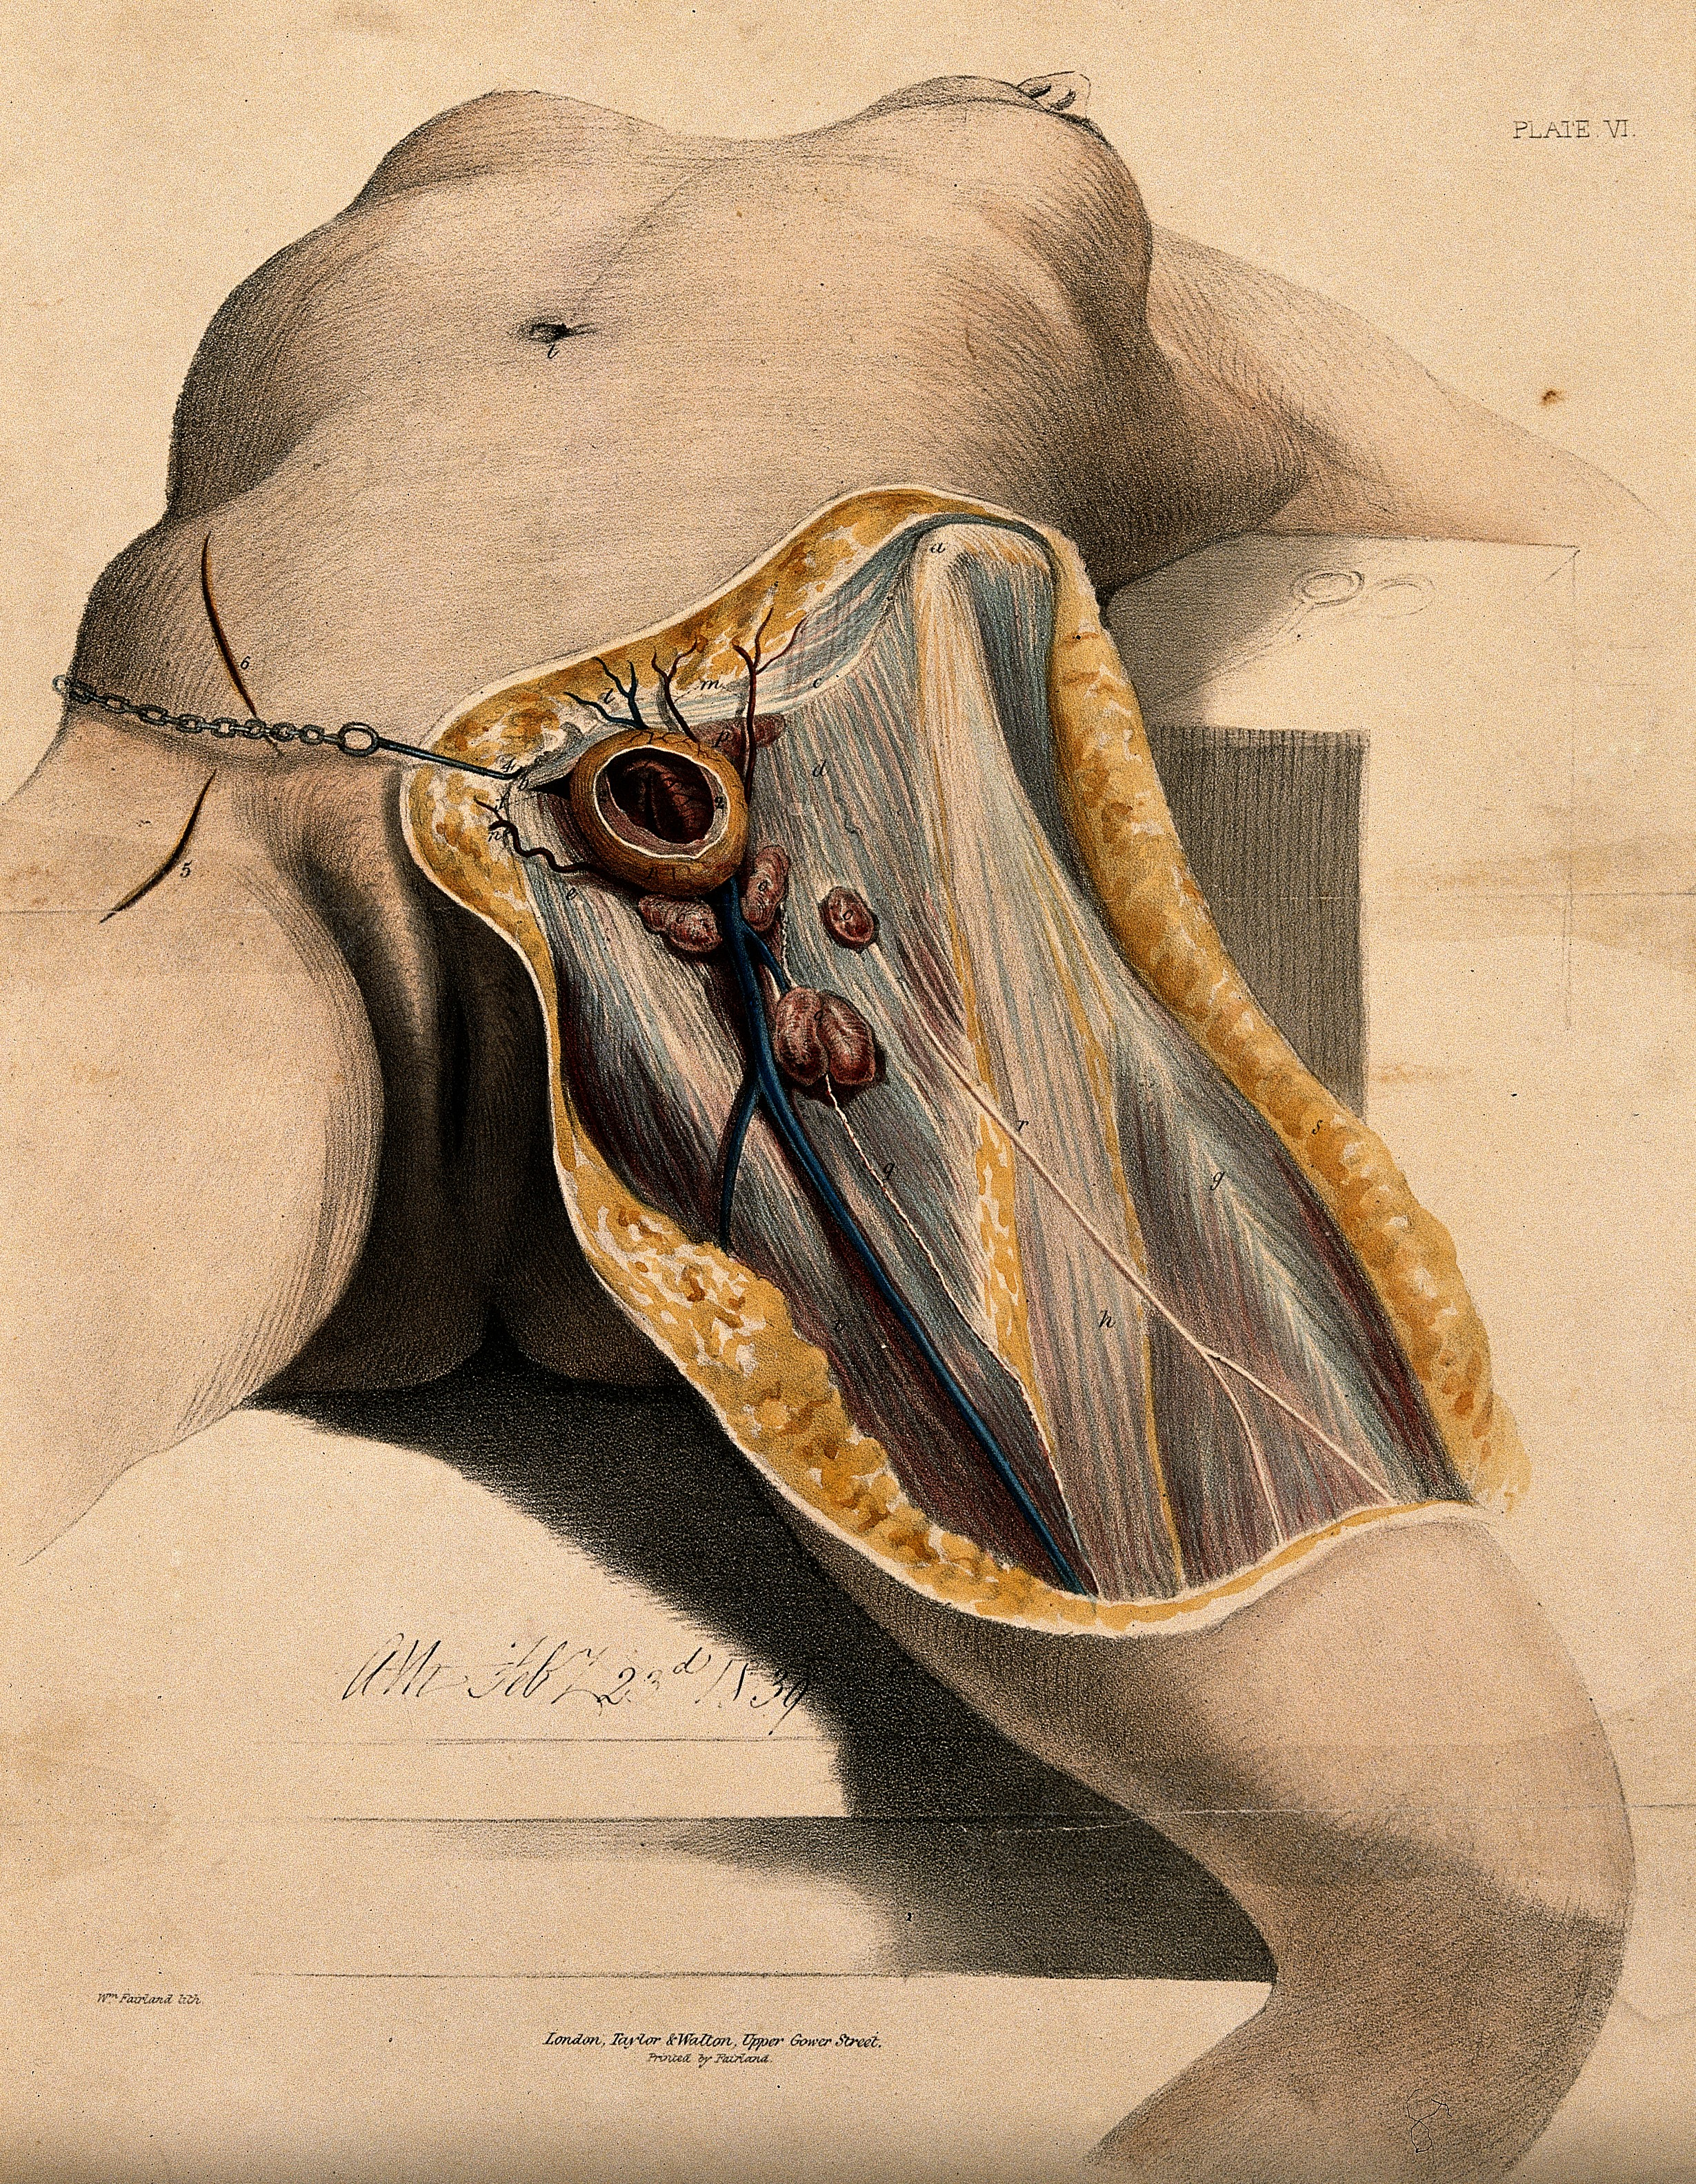 File:A dissection of the groin and thigh. Coloured lithograph by ...